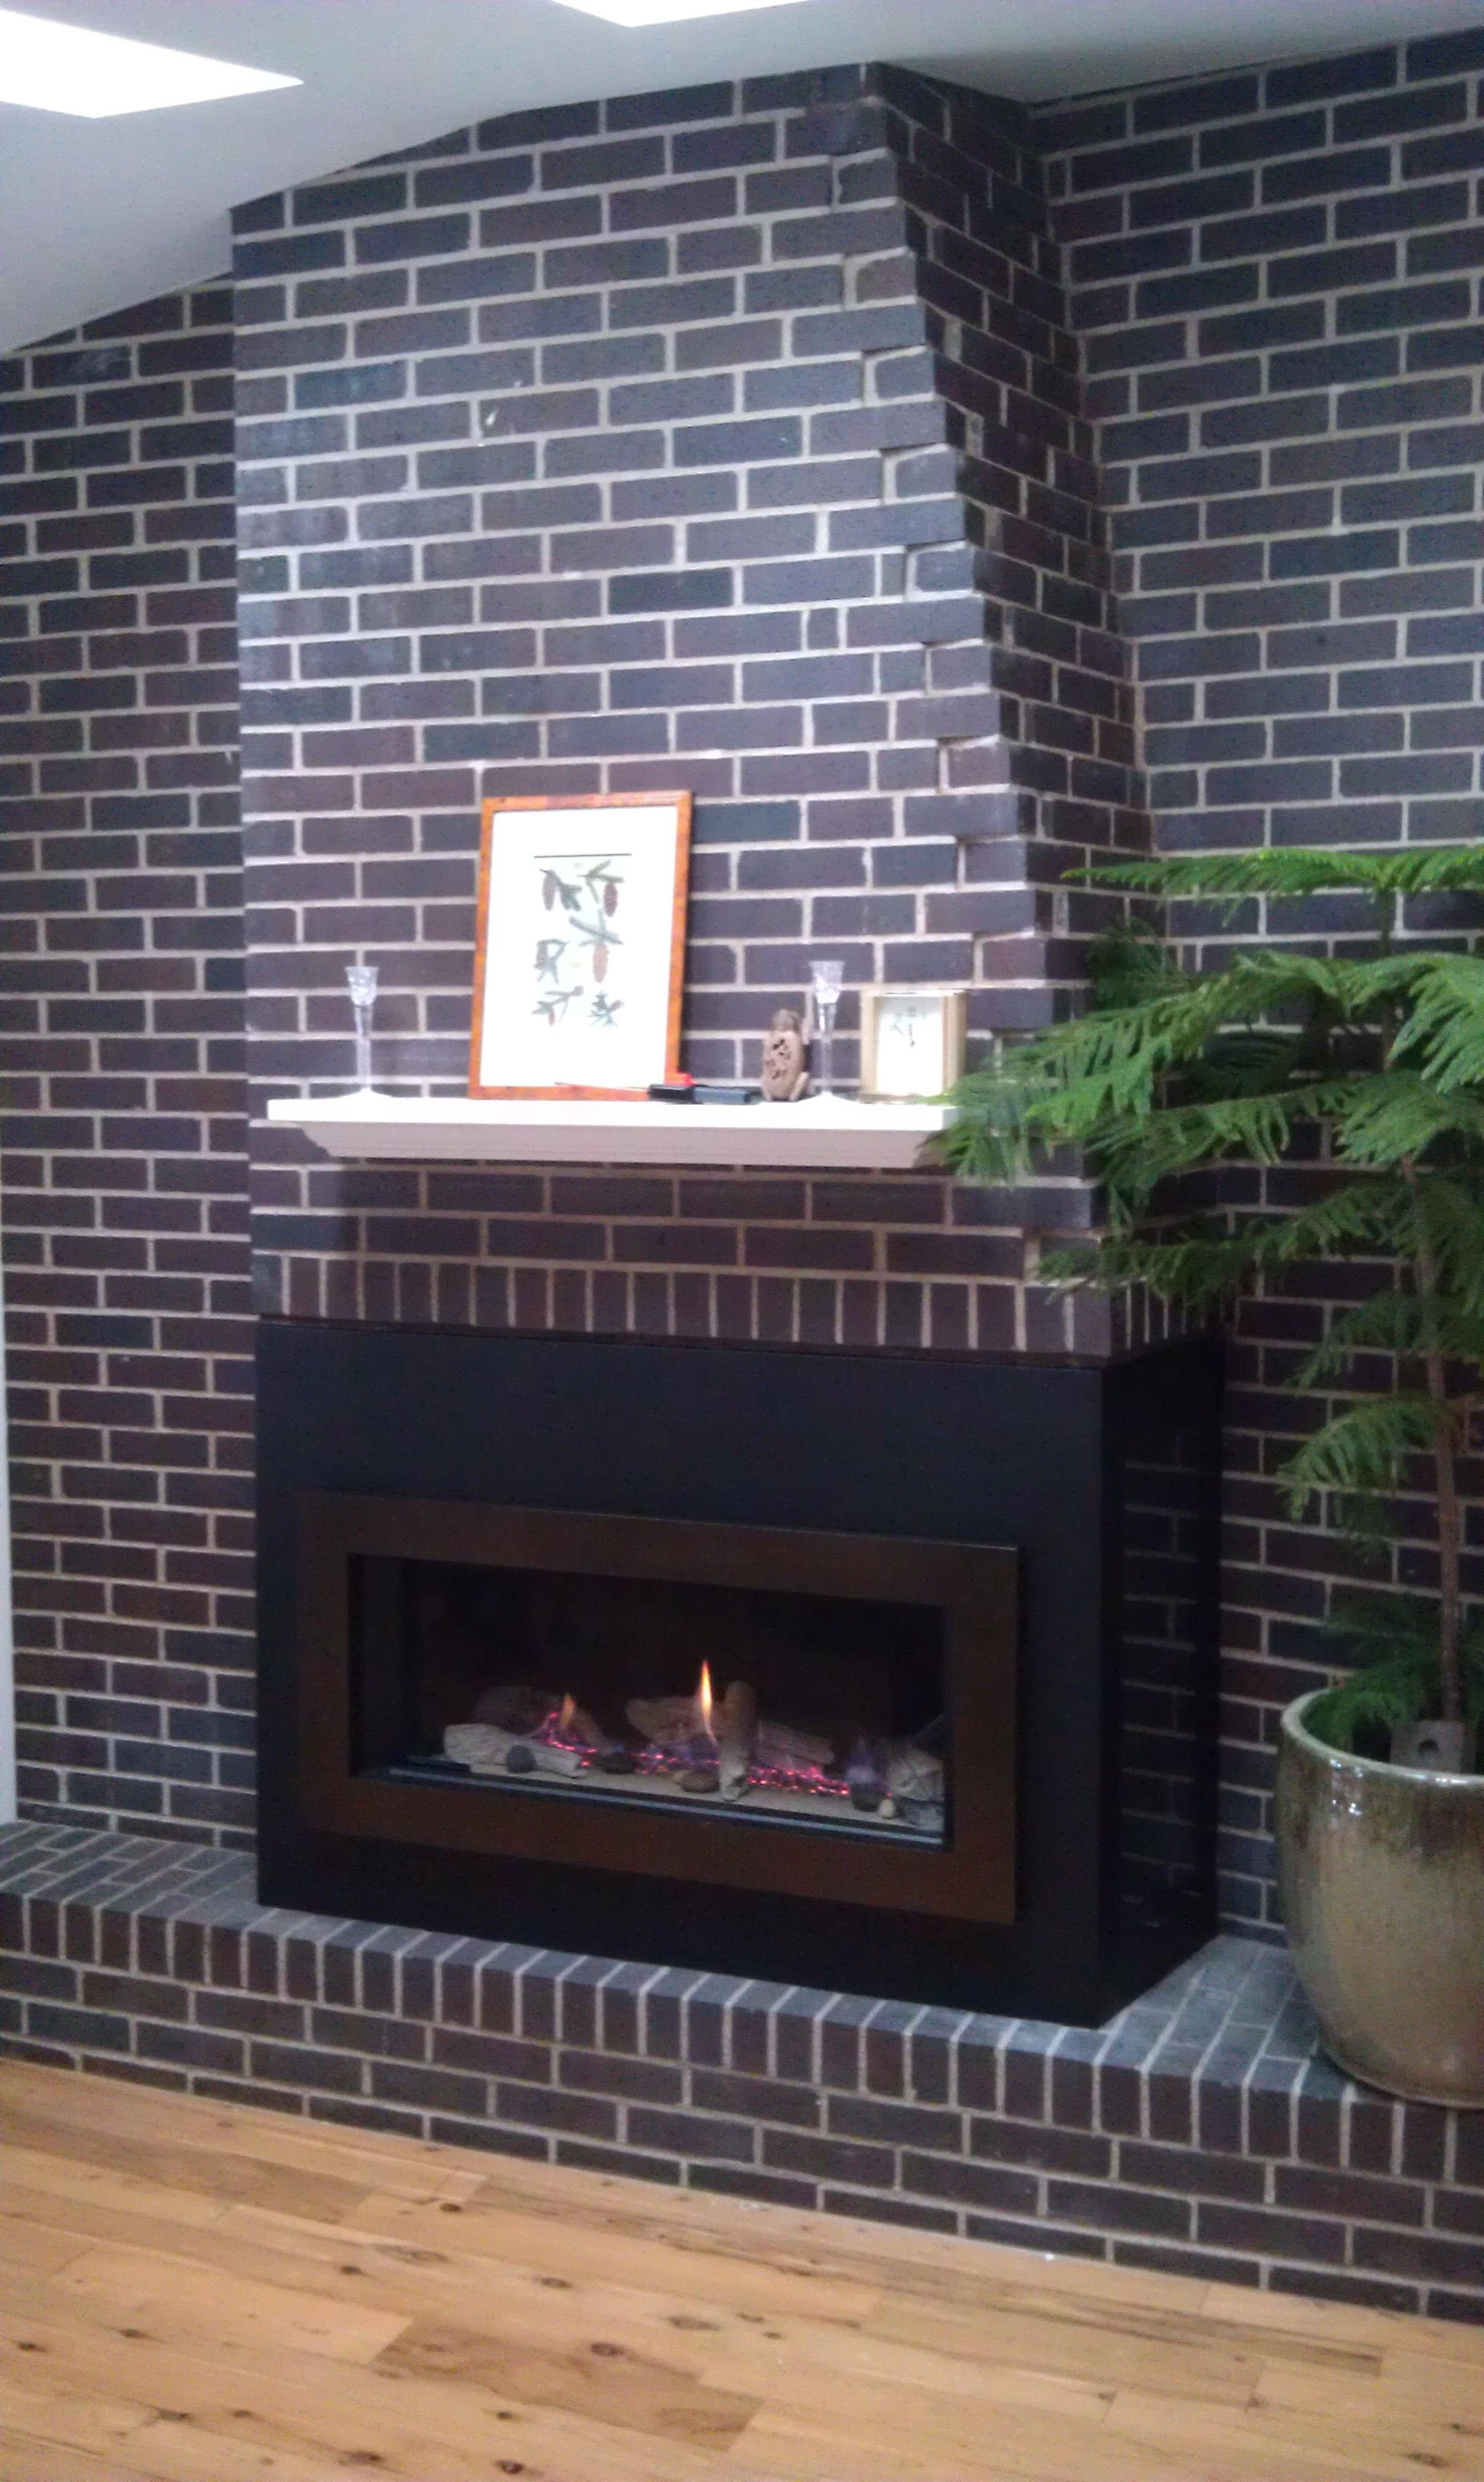 ferro toronto modern prices best linear store md familyroomw fireplace s igne electric family room gas fireplaces in residence